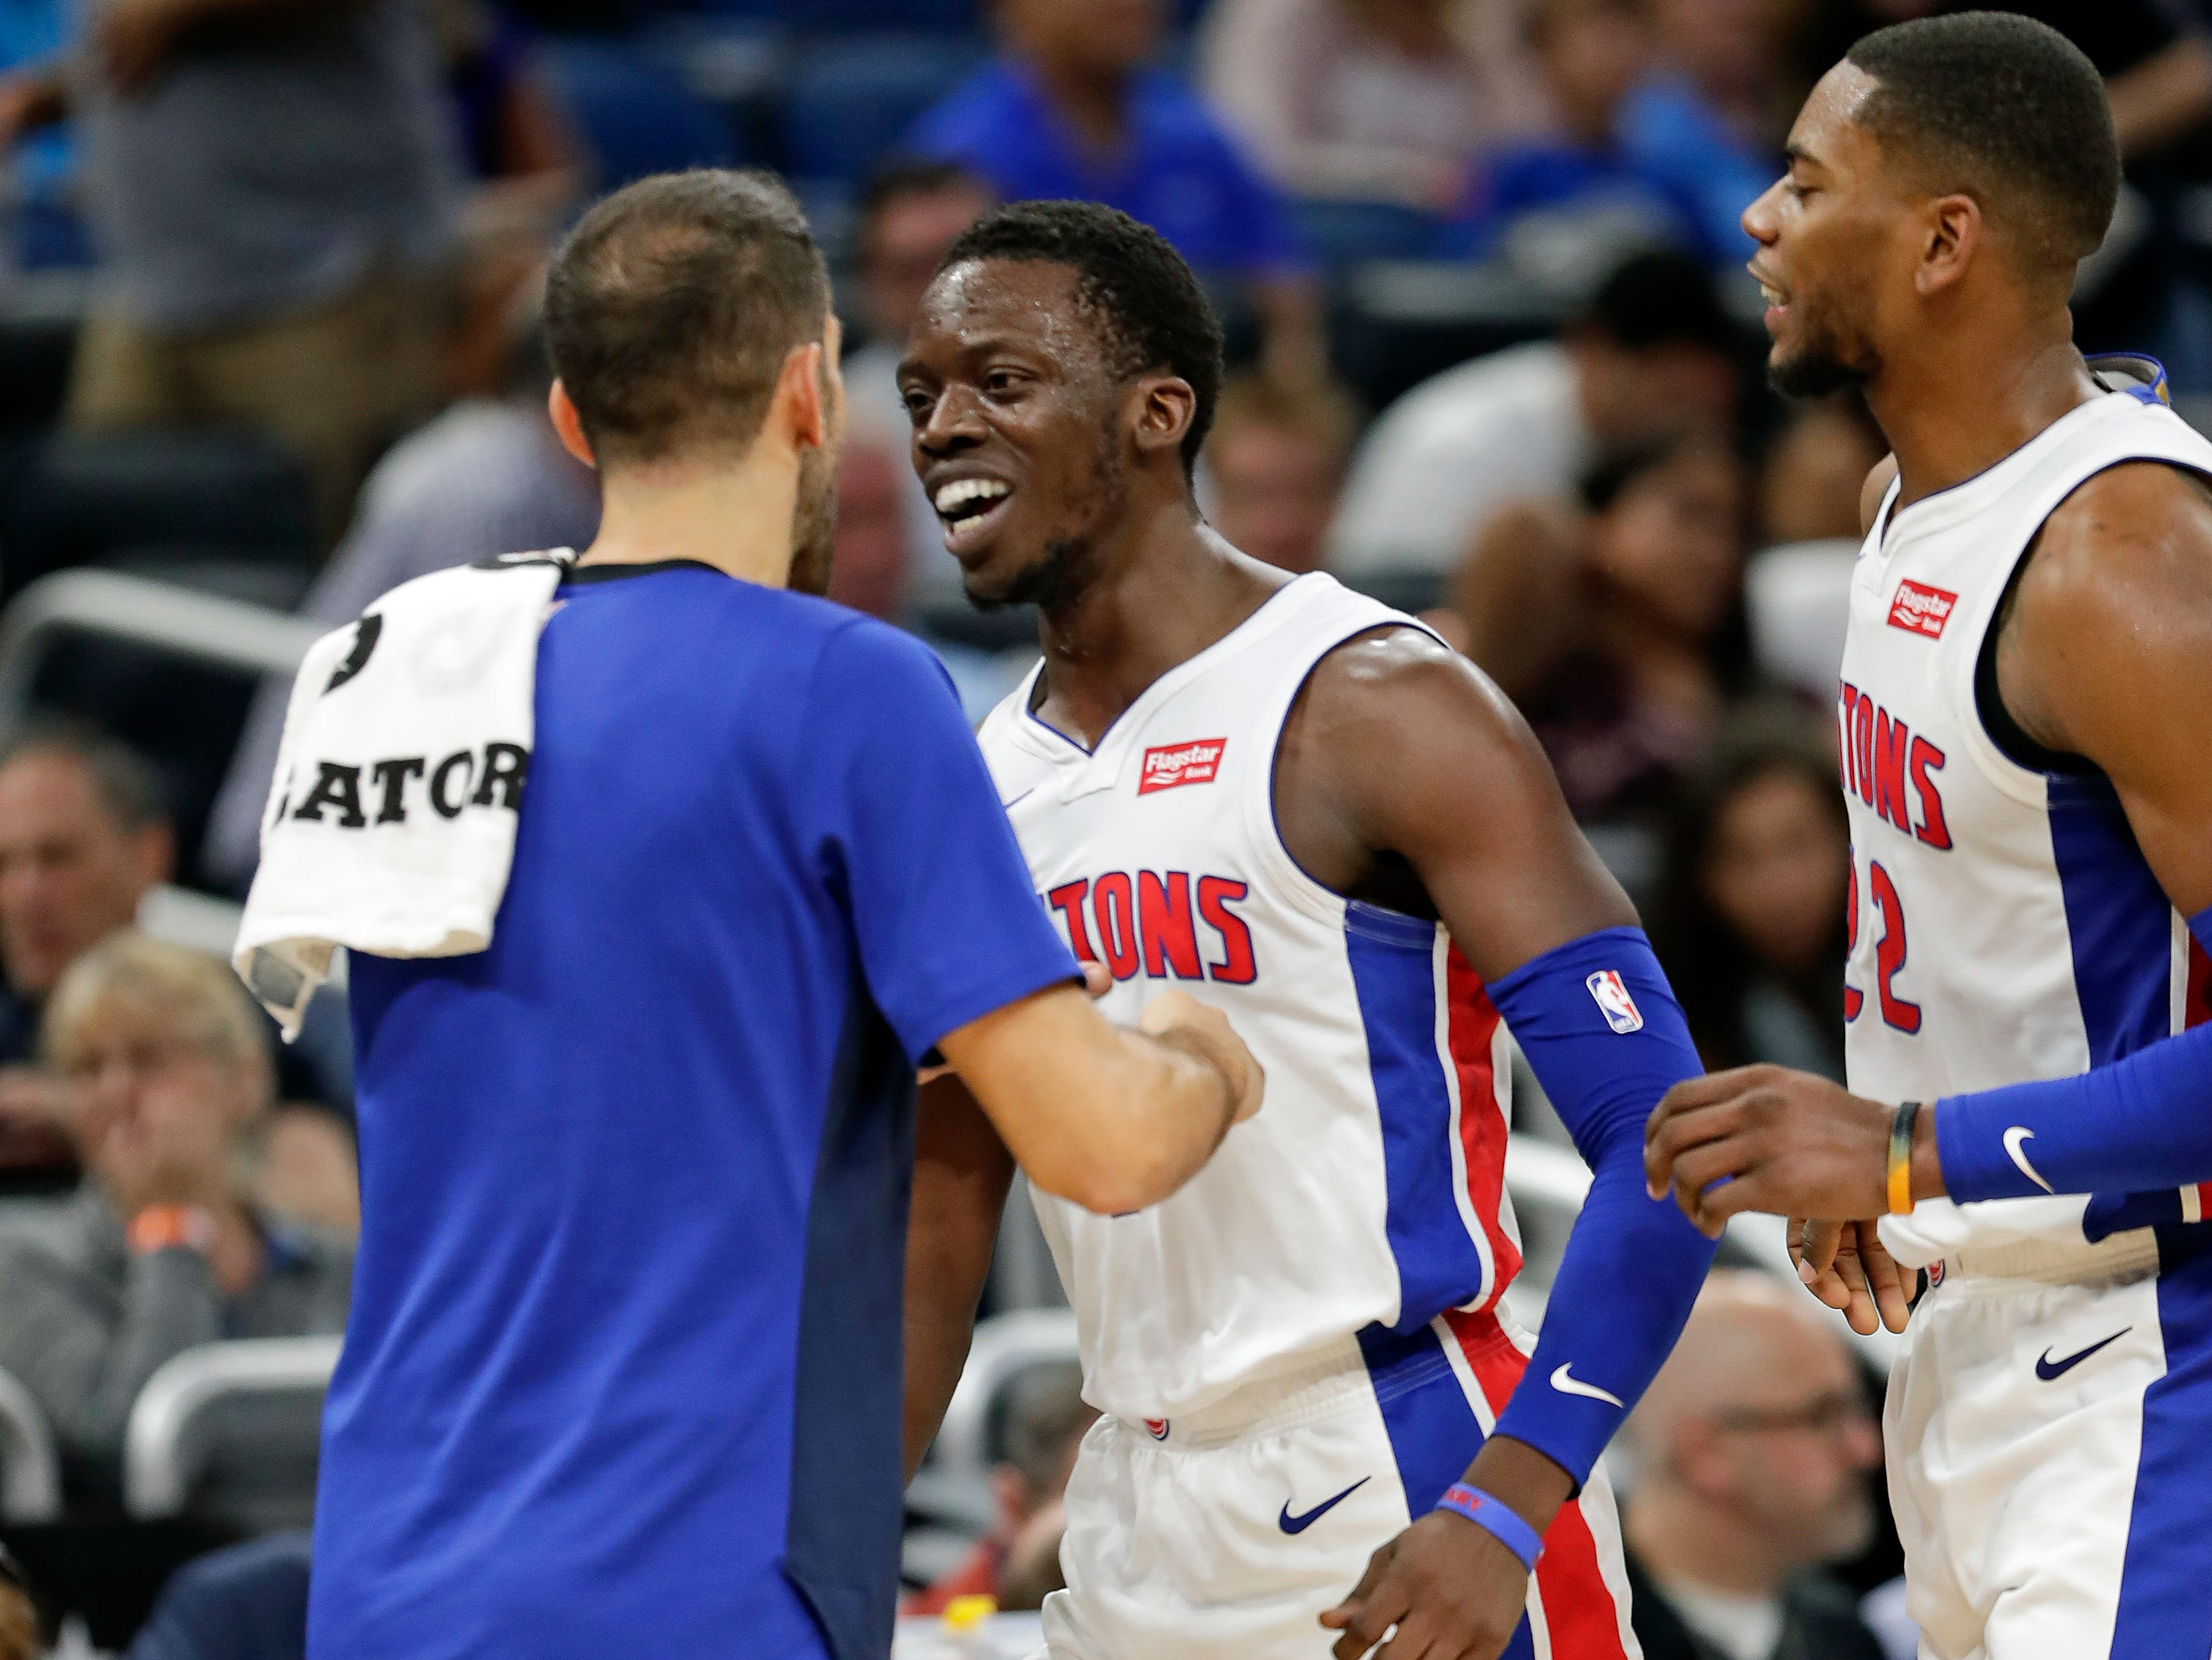 Detroit Pistons' Reggie Jackson, center, celebrates a 3-point shot during a time out with teammates Jose Calderon, left, and Glenn Robinson III, right, in the second half.